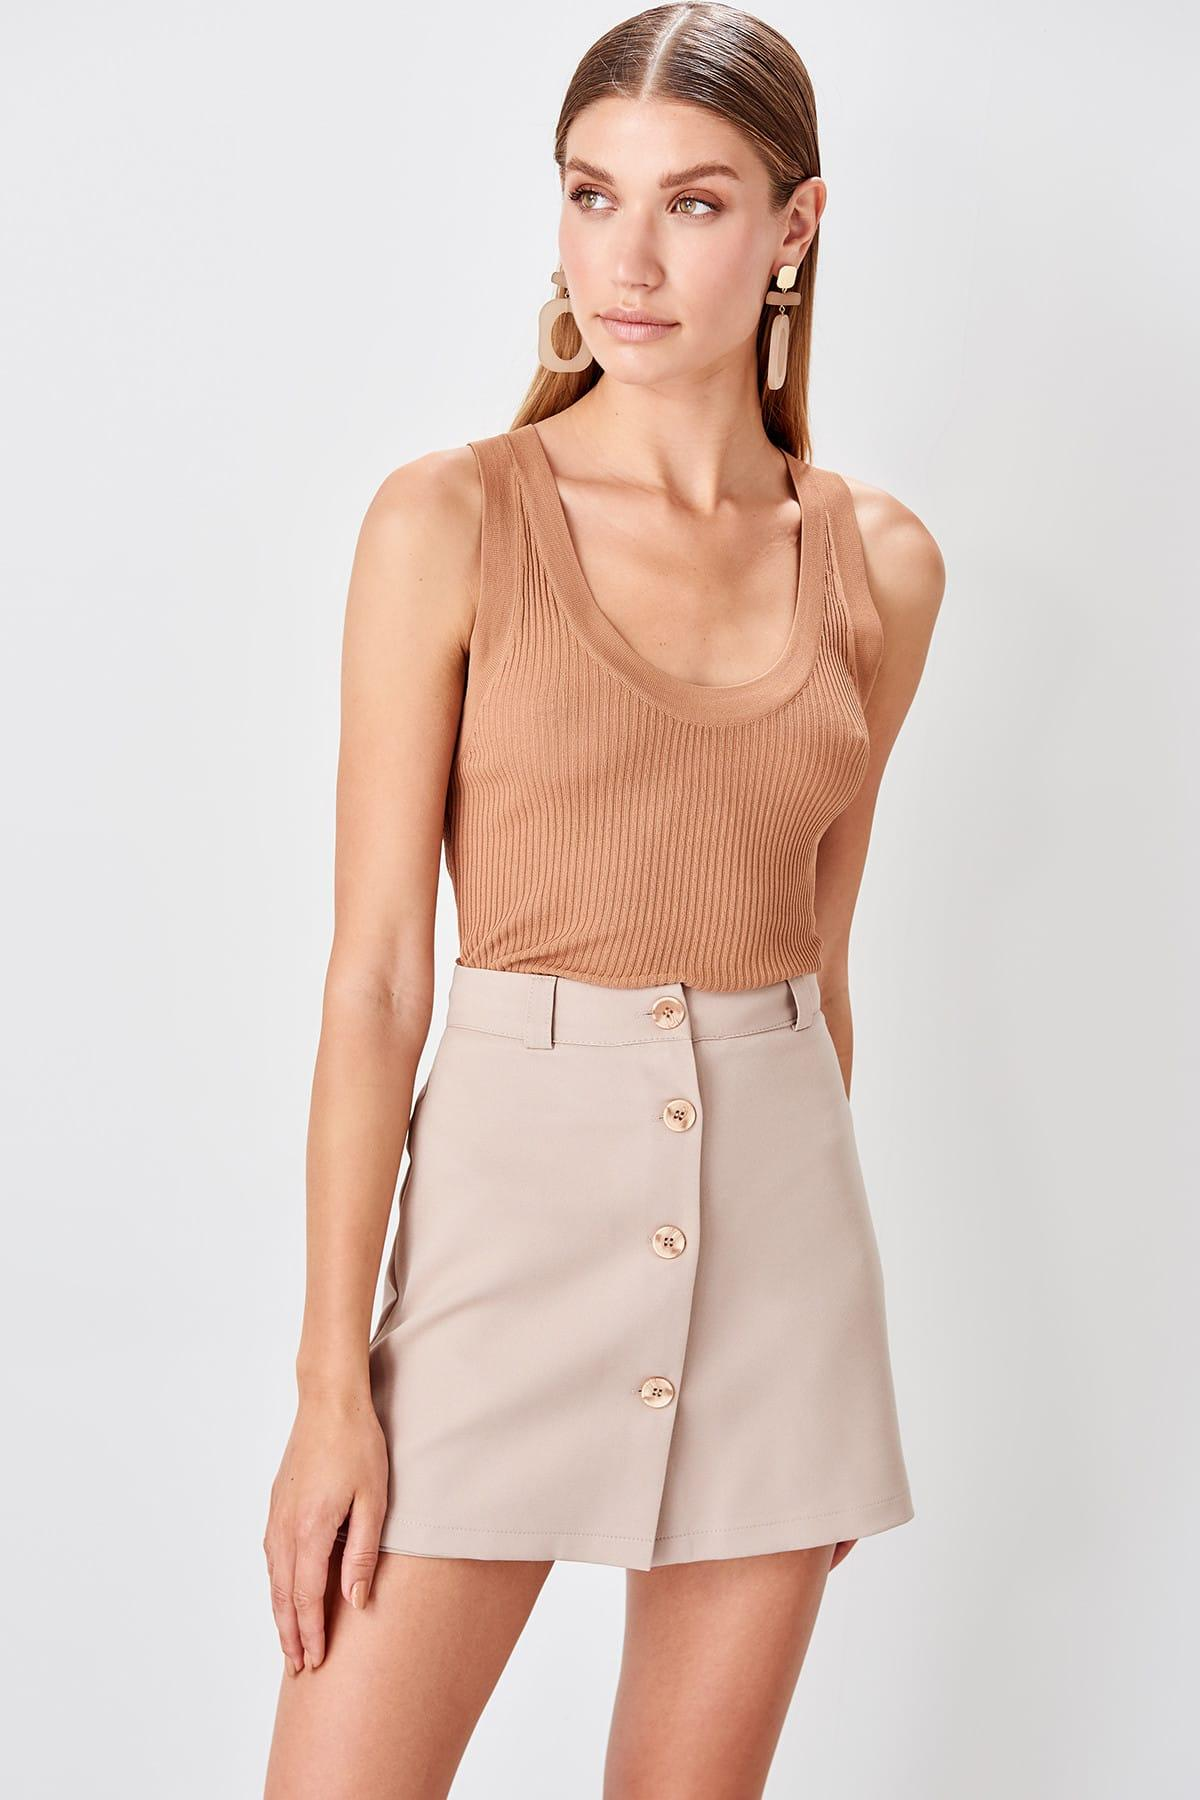 Trendyol Beige Button Detail Shorts Skirt TWOAW20SR0009